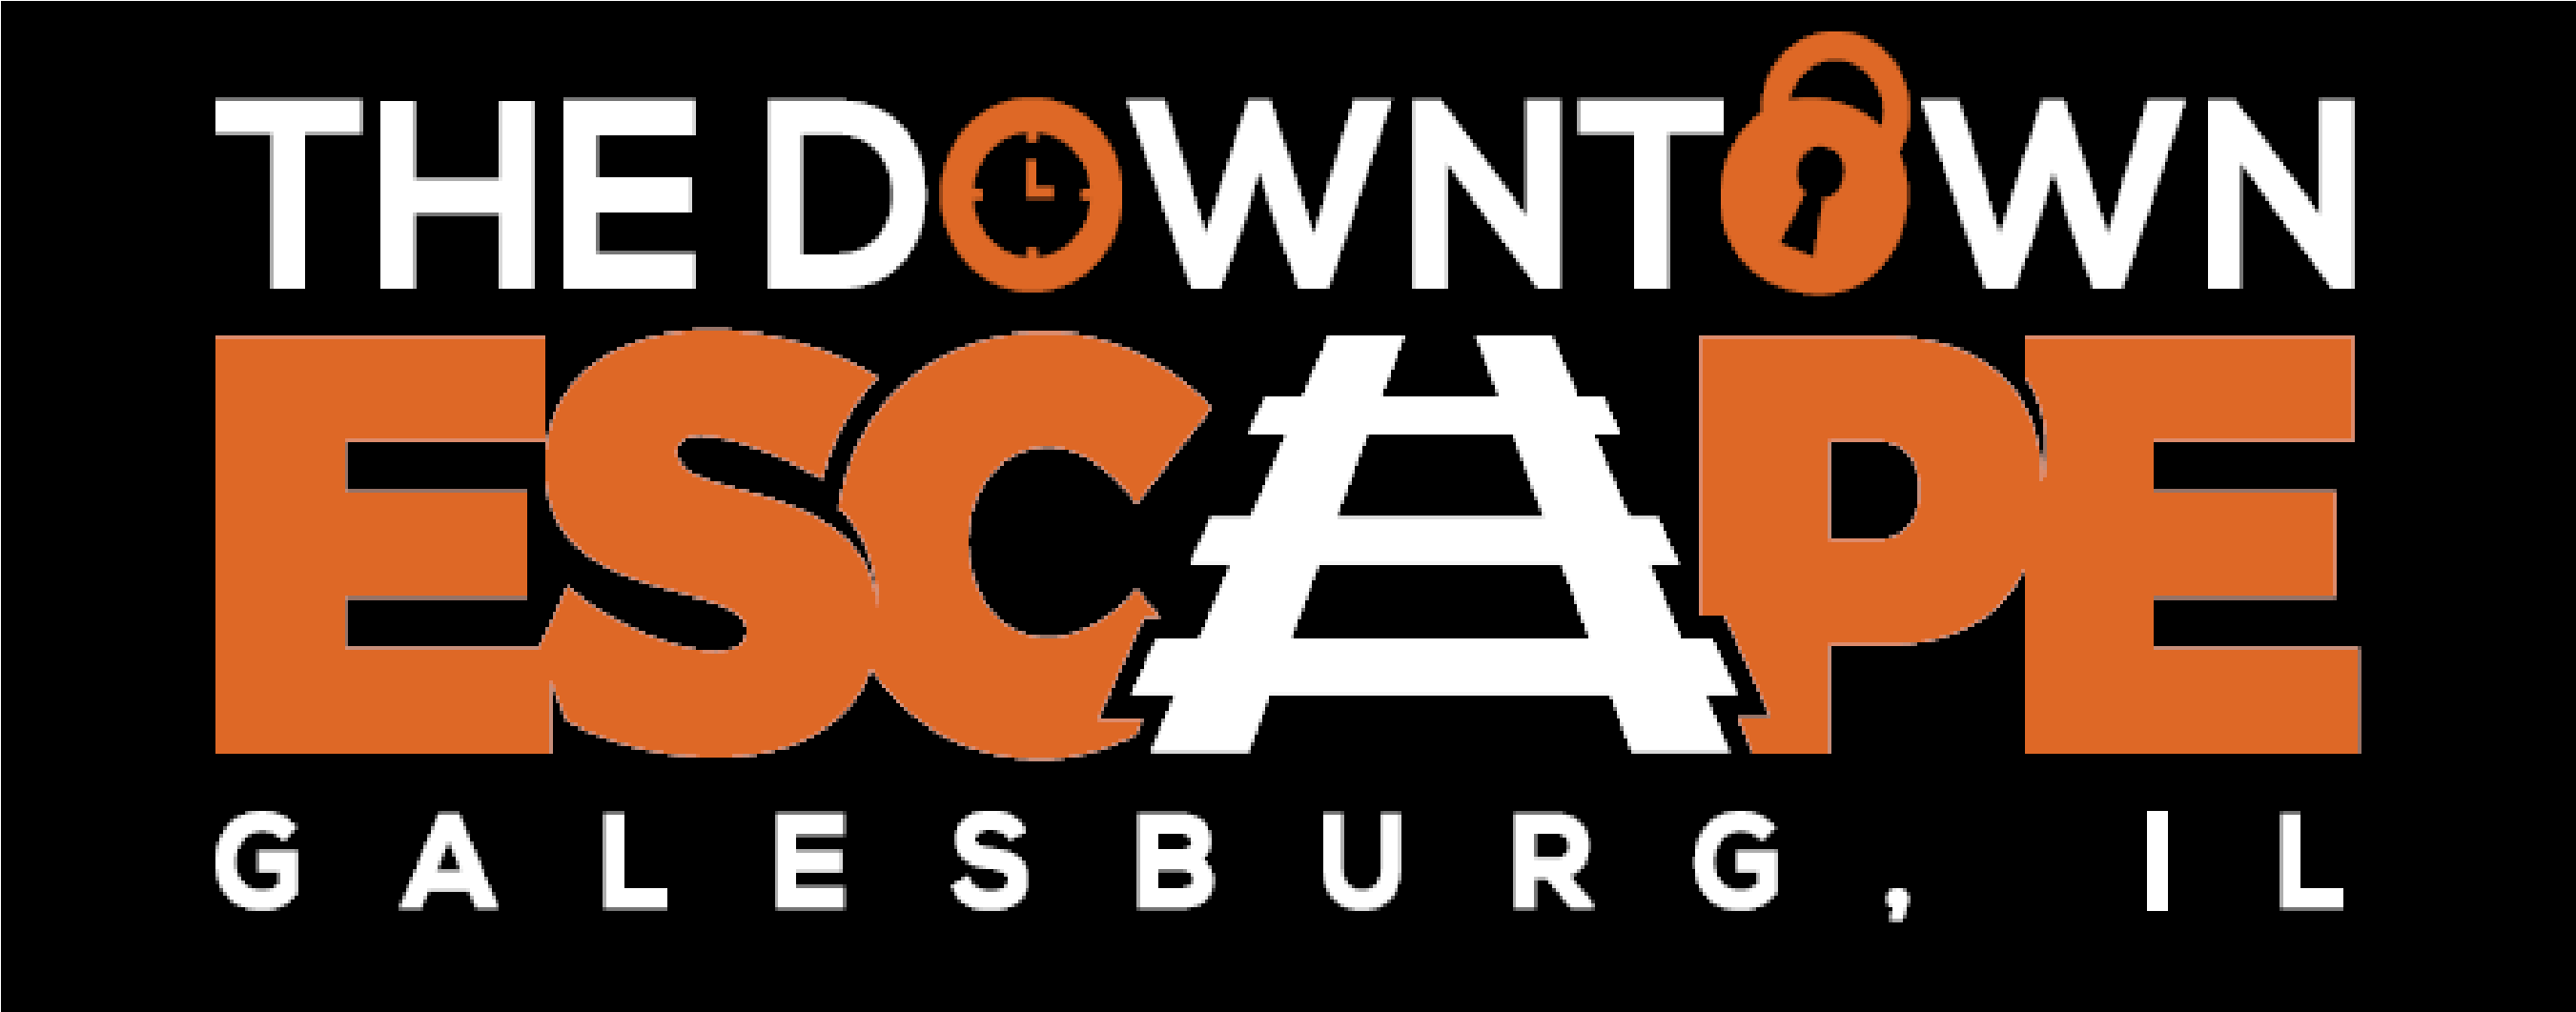 The Downtown Escape